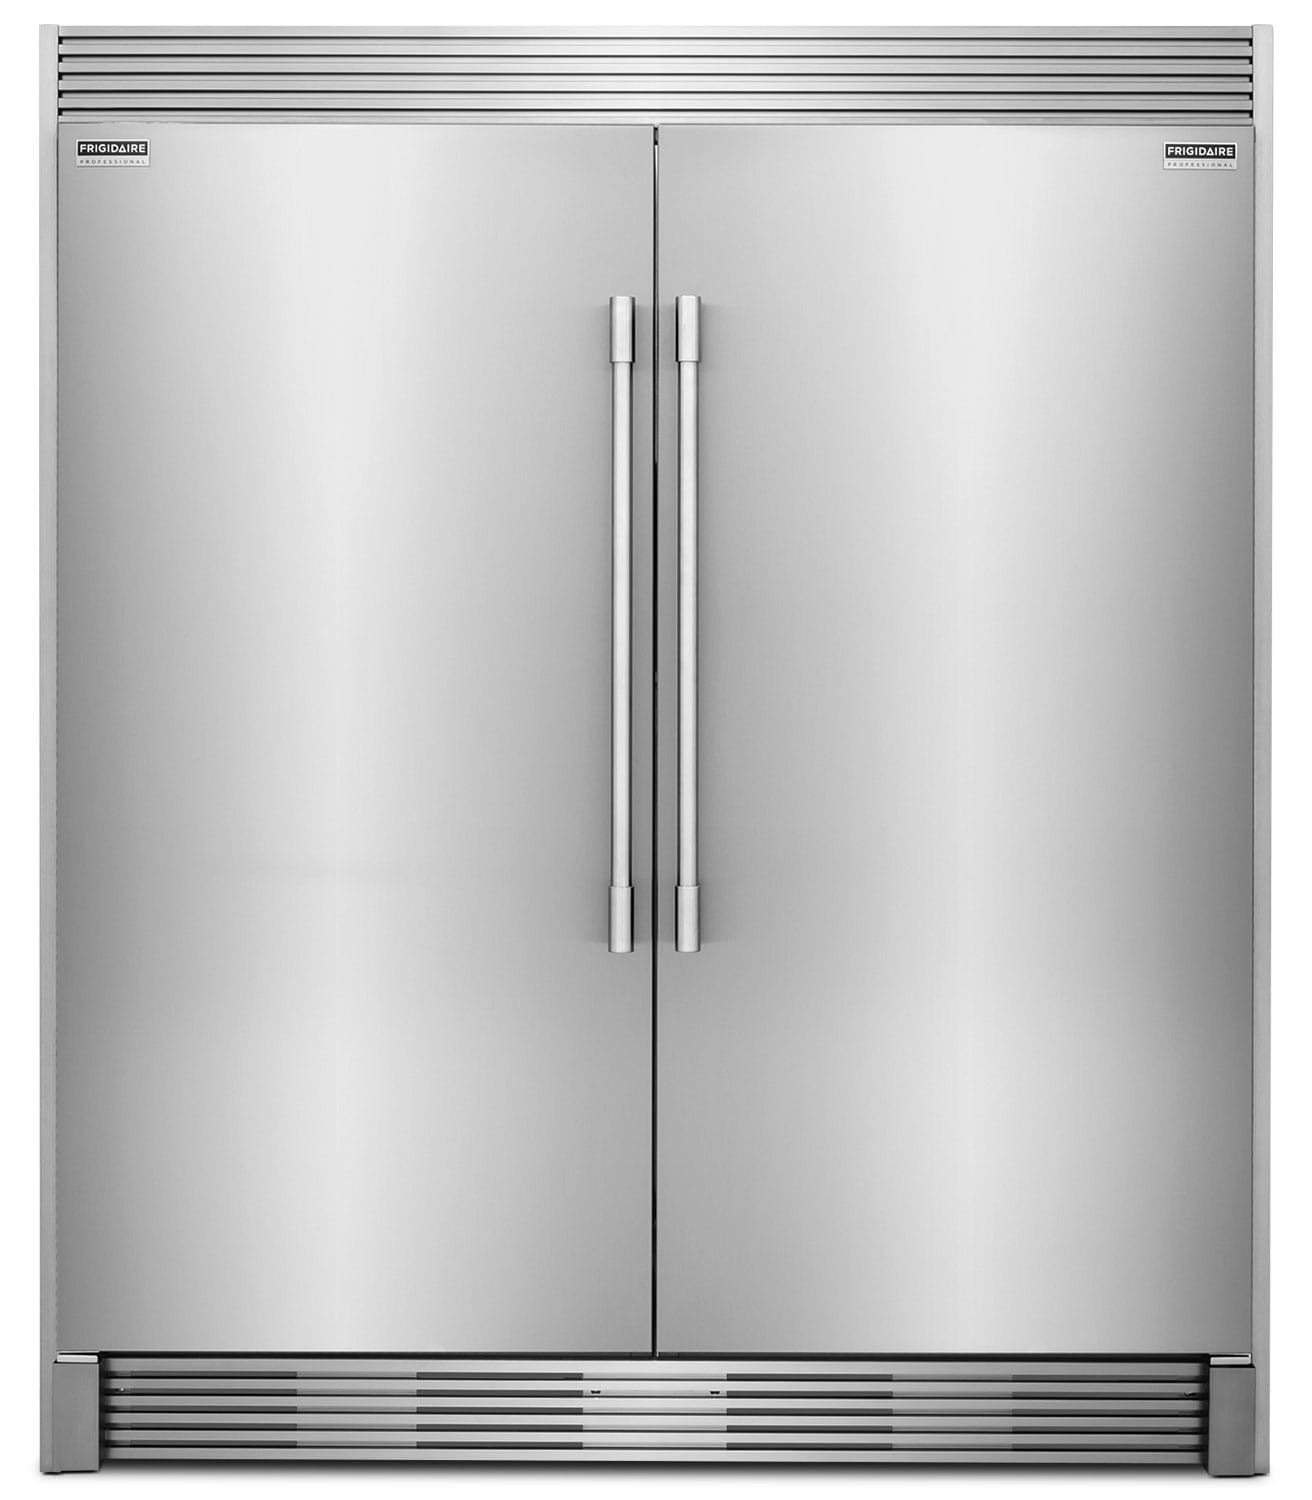 Refrigerators and Freezers - Frigidaire Professional 19 Cu. Ft. Refrigerator, 19 Cu. Ft. Freezer and Trim Kit Package